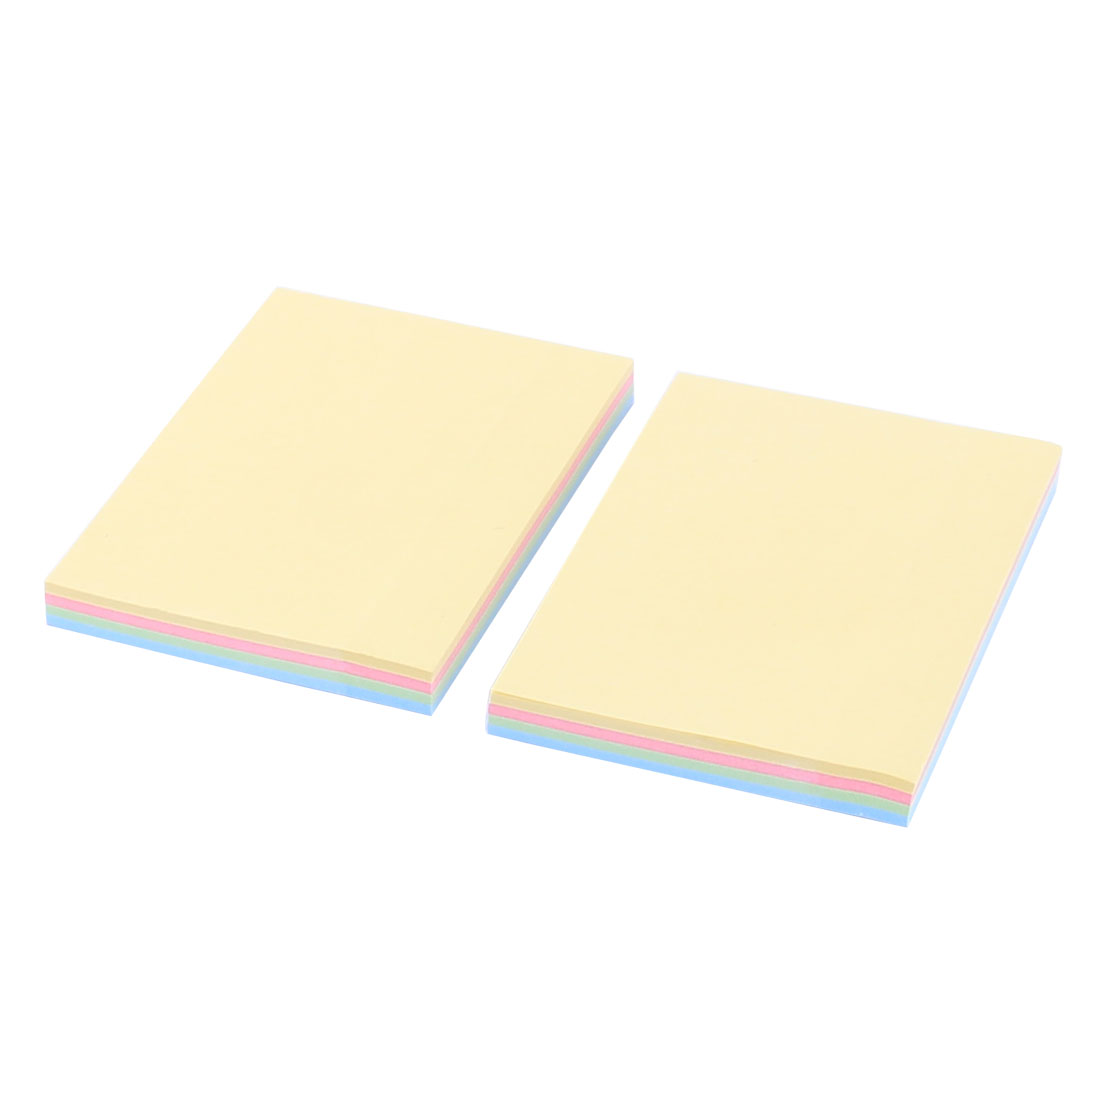 Office School Paper Square Reusable Adhesive Memo Marker Sticky Note Assorted Color 200 Sheets